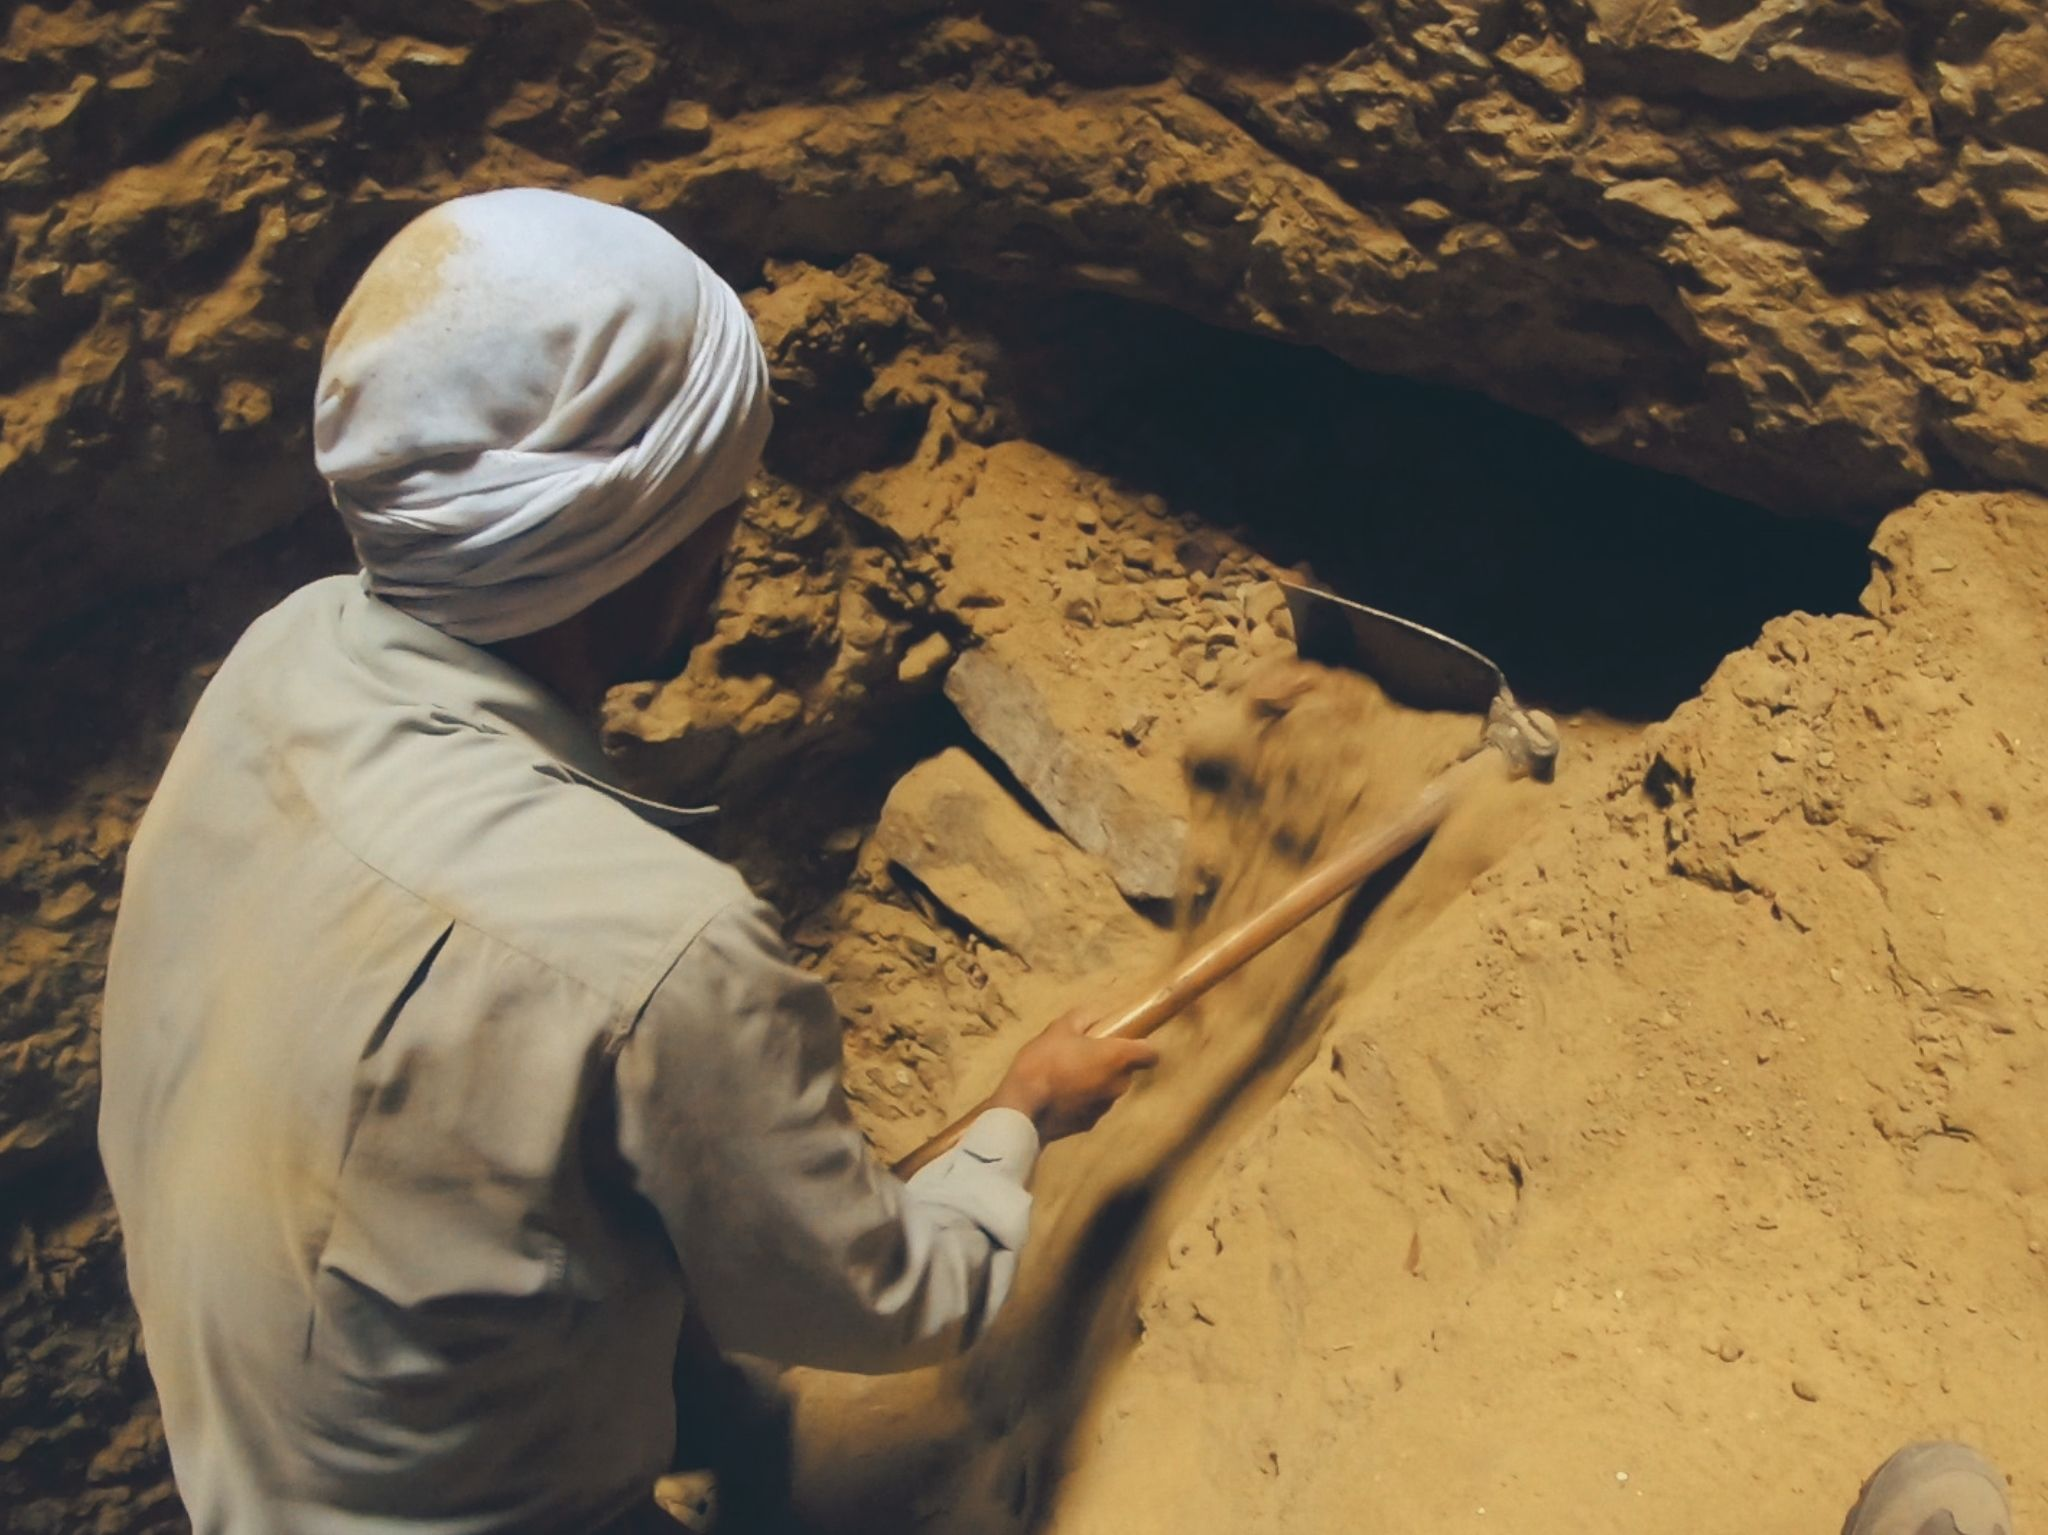 Saqqara, Egypt - Workers in Saqqara unearth a tomb entrance.  This is from Lost Treasures Egypt. [Photo of the day - August 2021]